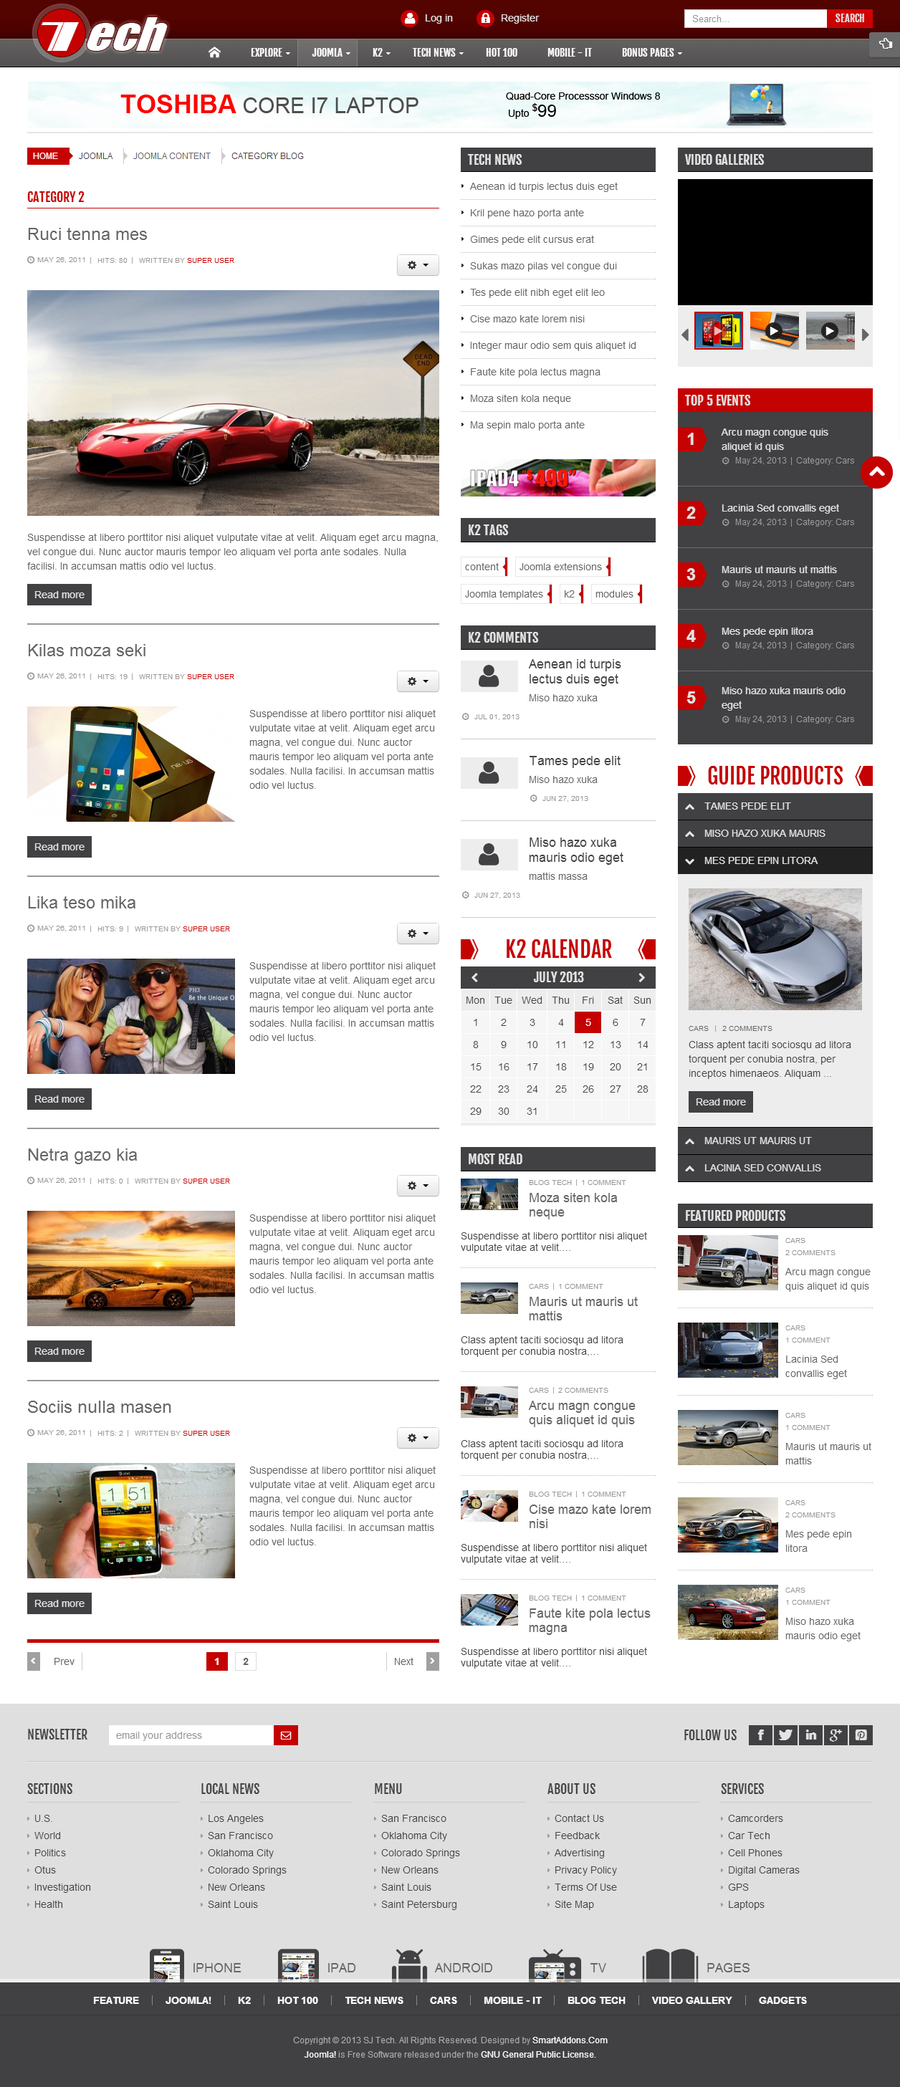 SJ Tech - Responsive Joomla news magazine Template for Tech - 02joomlablog.jpg